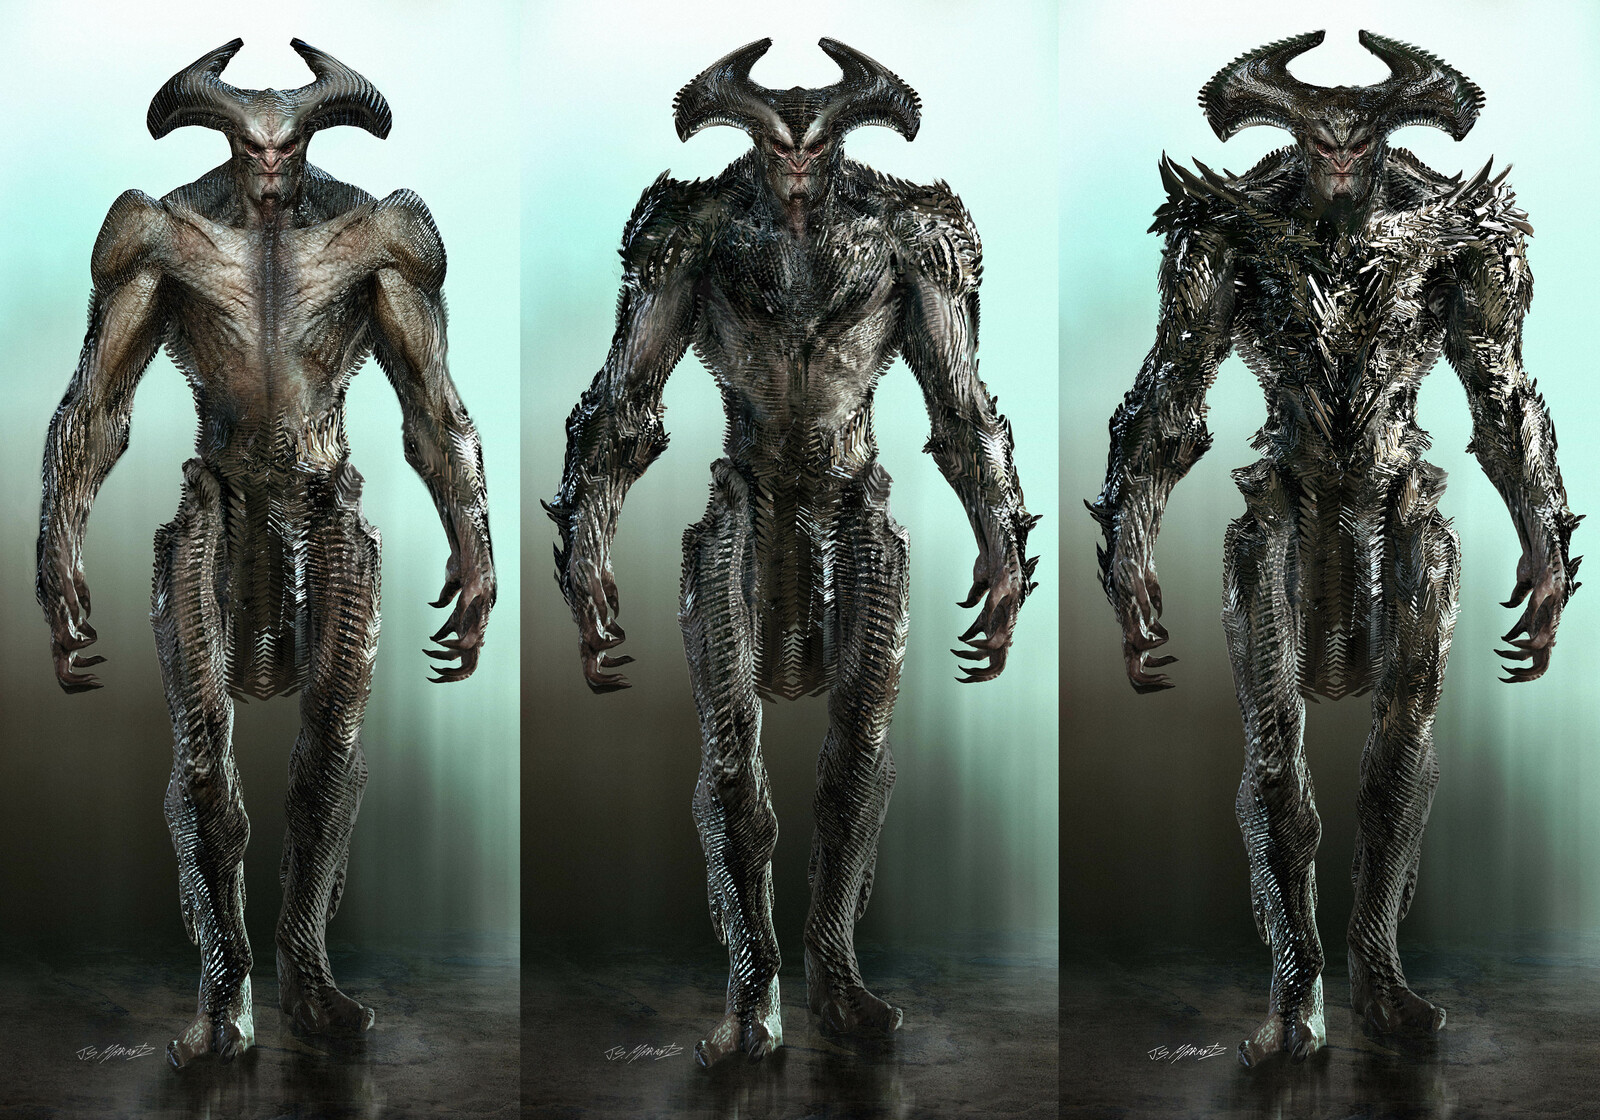 Steppenwolf Concept Art for Batman Vs Superman and Justice League